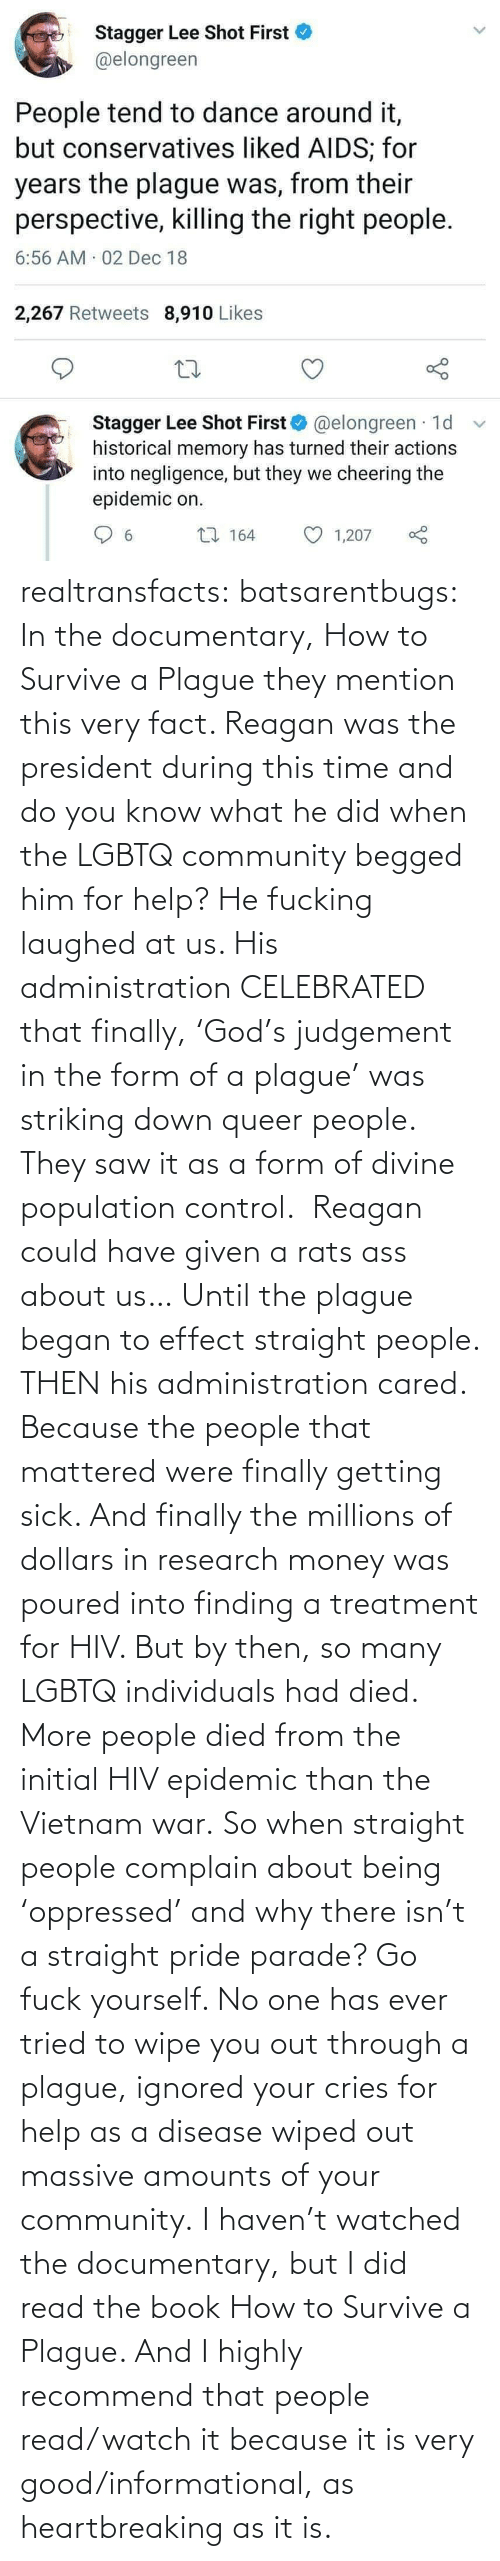 Form: Stagger Lee Shot First  @elongreen  People tend to dance around it,  but conservatives liked AIDS; for  years the plague was, from their  perspective, killing the right people.  6:56 AM 02 Dec 18  2,267 Retweets 8,910 Likes  Stagger Lee Shot First O @elongreen · 1d  historical memory has turned their actions  into negligence, but they we cheering the  epidemic on.  27 164  1,207  6. realtransfacts:  batsarentbugs:  In the documentary, How to Survive a Plague they mention this very fact. Reagan was the president during this time and do you know what he did when the LGBTQ community begged him for help? He fucking laughed at us. His administration CELEBRATED that finally, 'God's judgement in the form of a plague' was striking down queer people.  They saw it as a form of divine population control.  Reagan could have given a rats ass about us… Until the plague began to effect straight people. THEN his administration cared. Because the people that mattered were finally getting sick. And finally the millions of dollars in research money was poured into finding a treatment for HIV. But by then, so many LGBTQ individuals had died.  More people died from the initial HIV epidemic than the Vietnam war. So when straight people complain about being 'oppressed' and why there isn't a straight pride parade? Go fuck yourself. No one has ever tried to wipe you out through a plague, ignored your cries for help as a disease wiped out massive amounts of your community.  I haven't watched the documentary, but I did read the book  How to Survive a Plague. And I highly recommend that people read/watch it because it is very good/informational, as heartbreaking as it is.